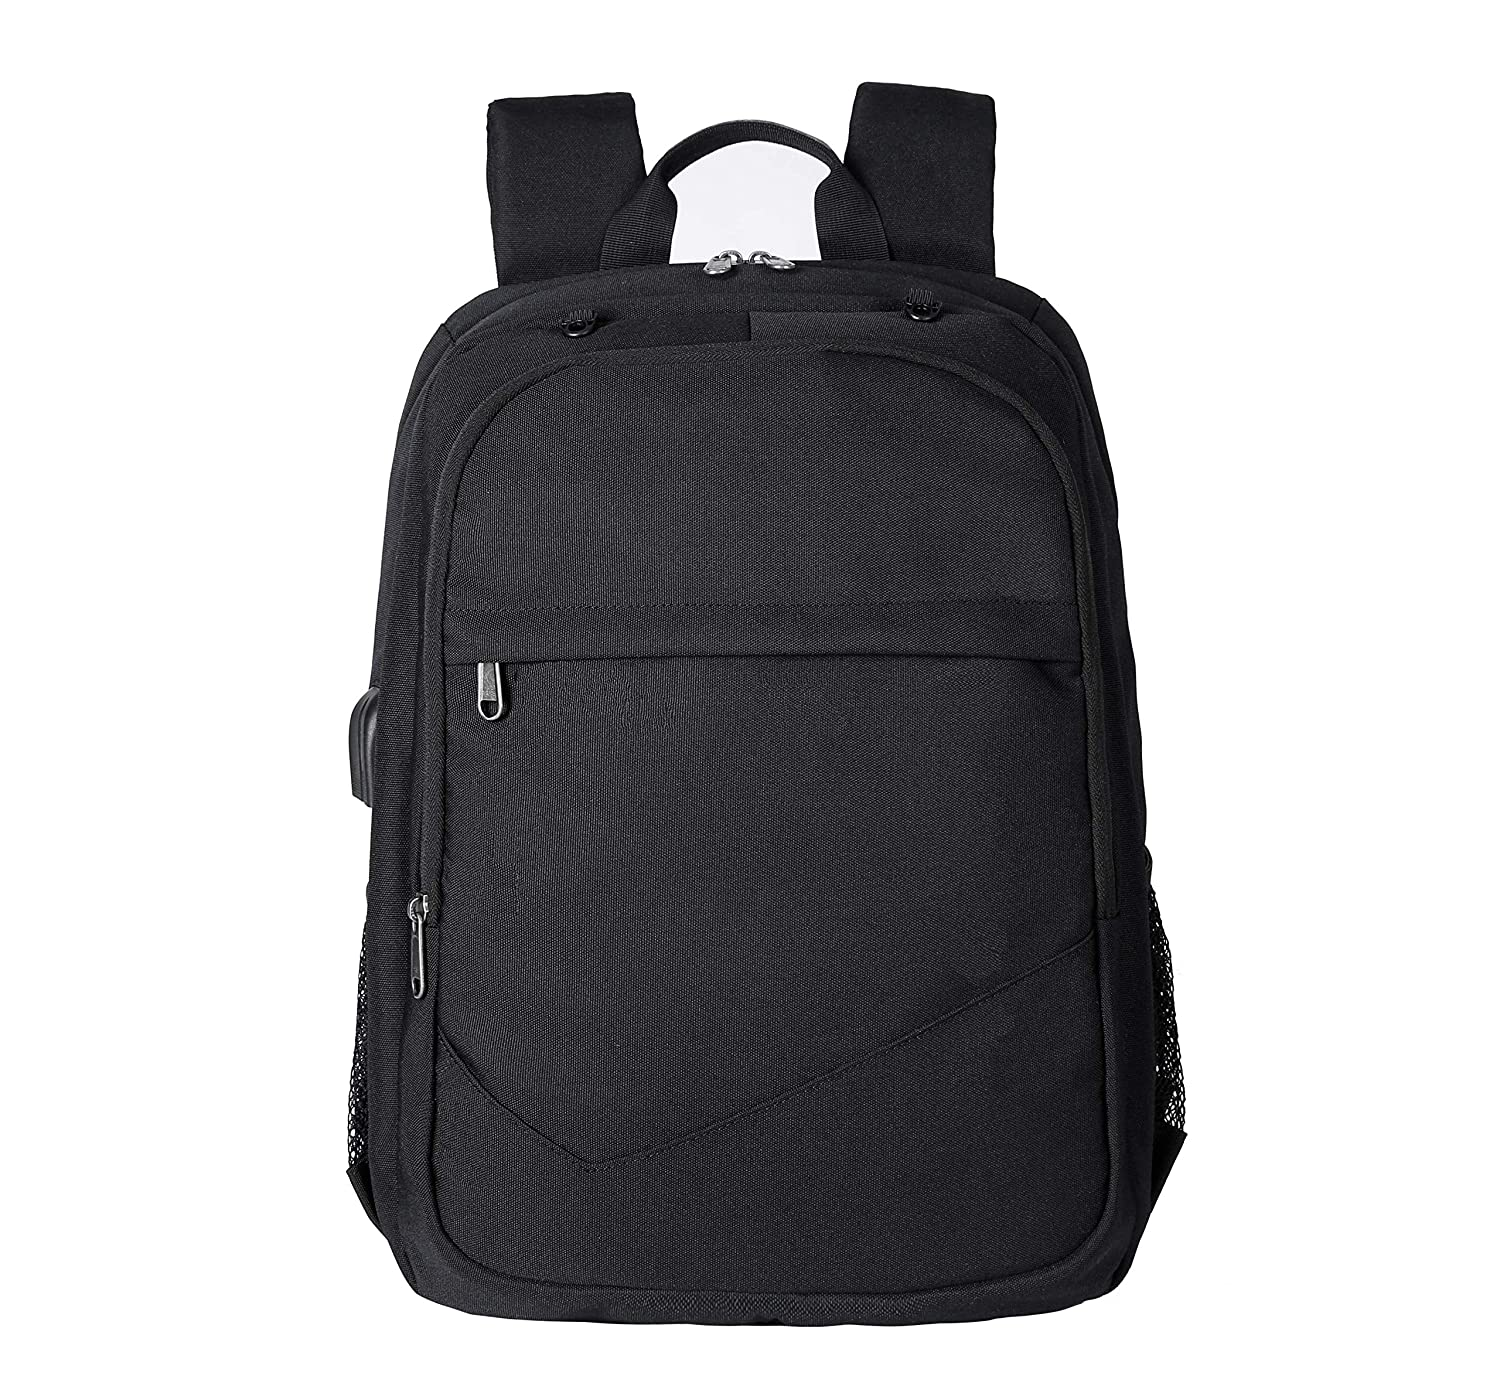 6401ab2978d6 Large Business Travel Laptop Backpack with Detachable Compartment